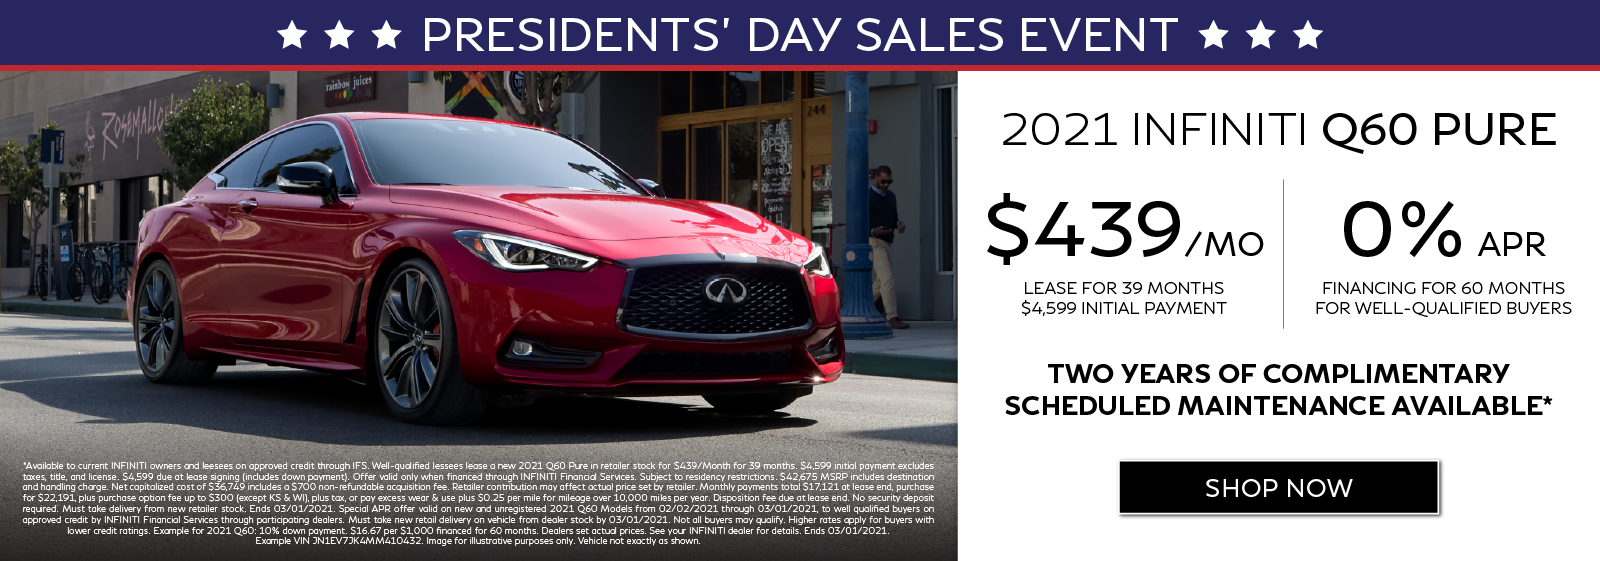 Well-qualified customers can lease a new 2021 Q60 PURE for $439 per month for 39 months OR get 0% APR financing for 60 months. Two years of complimentary scheduled maintenance available.* Click to shop now.